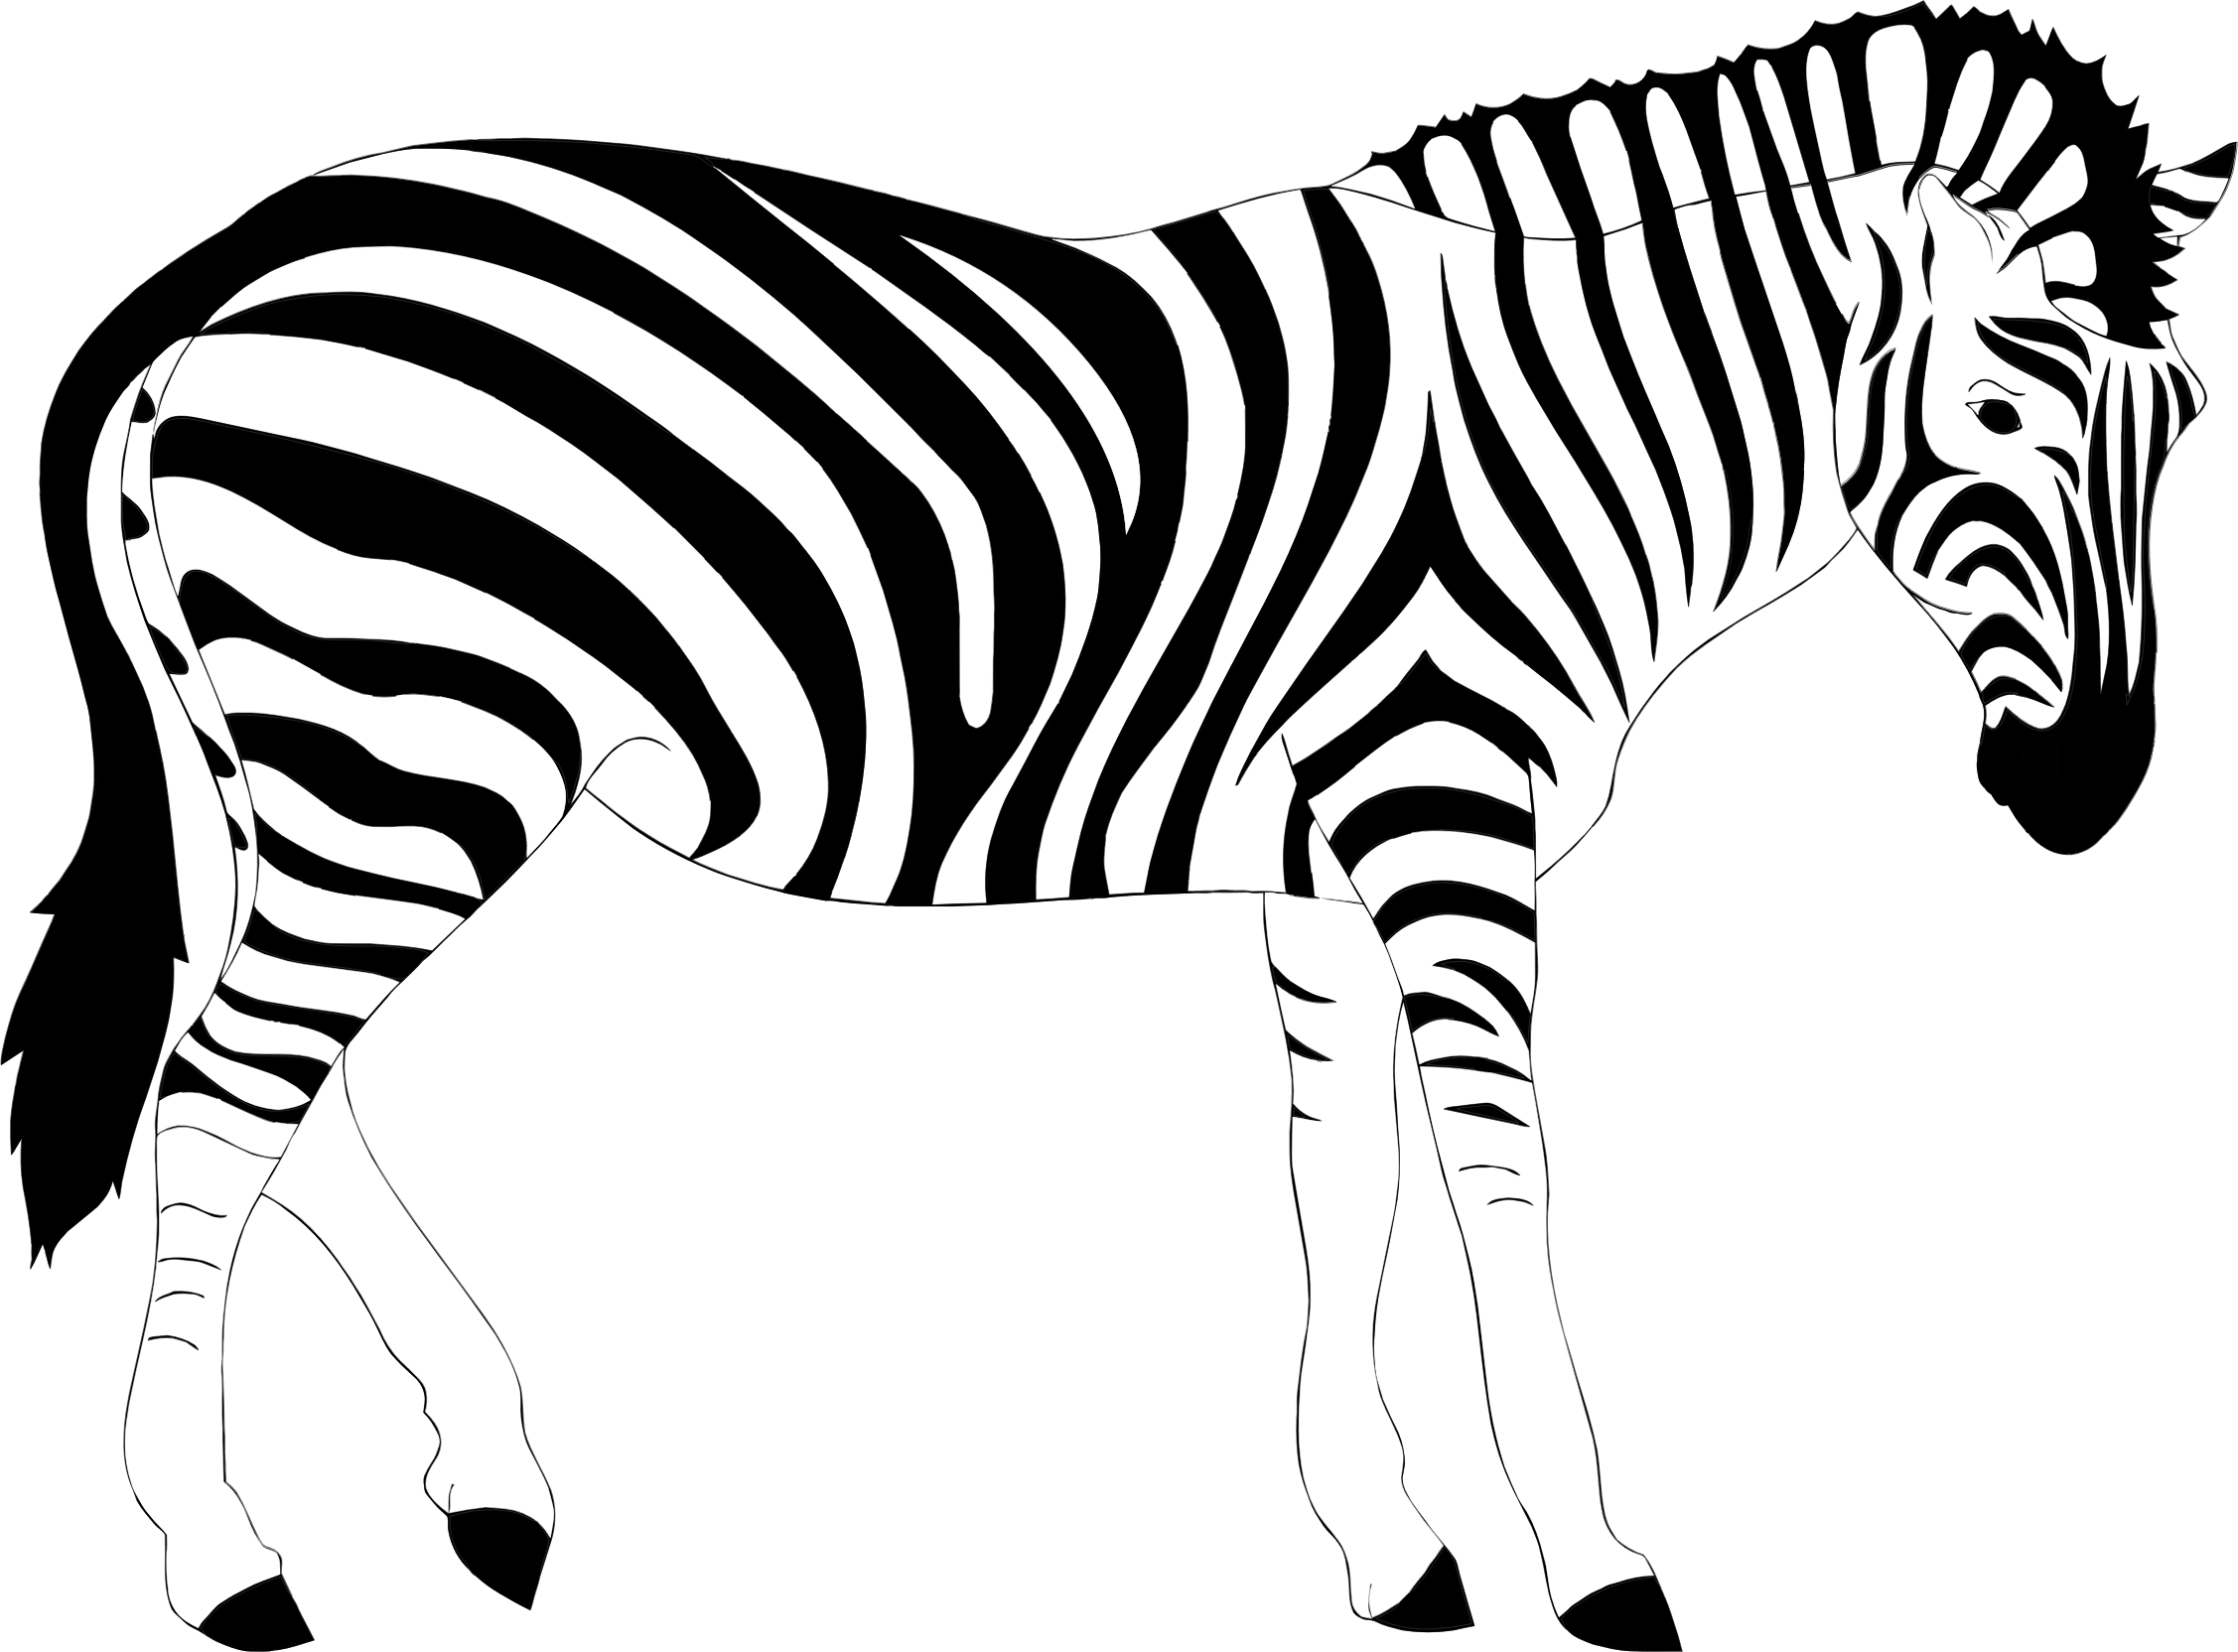 Realistic Zebra Illustration by GDJ